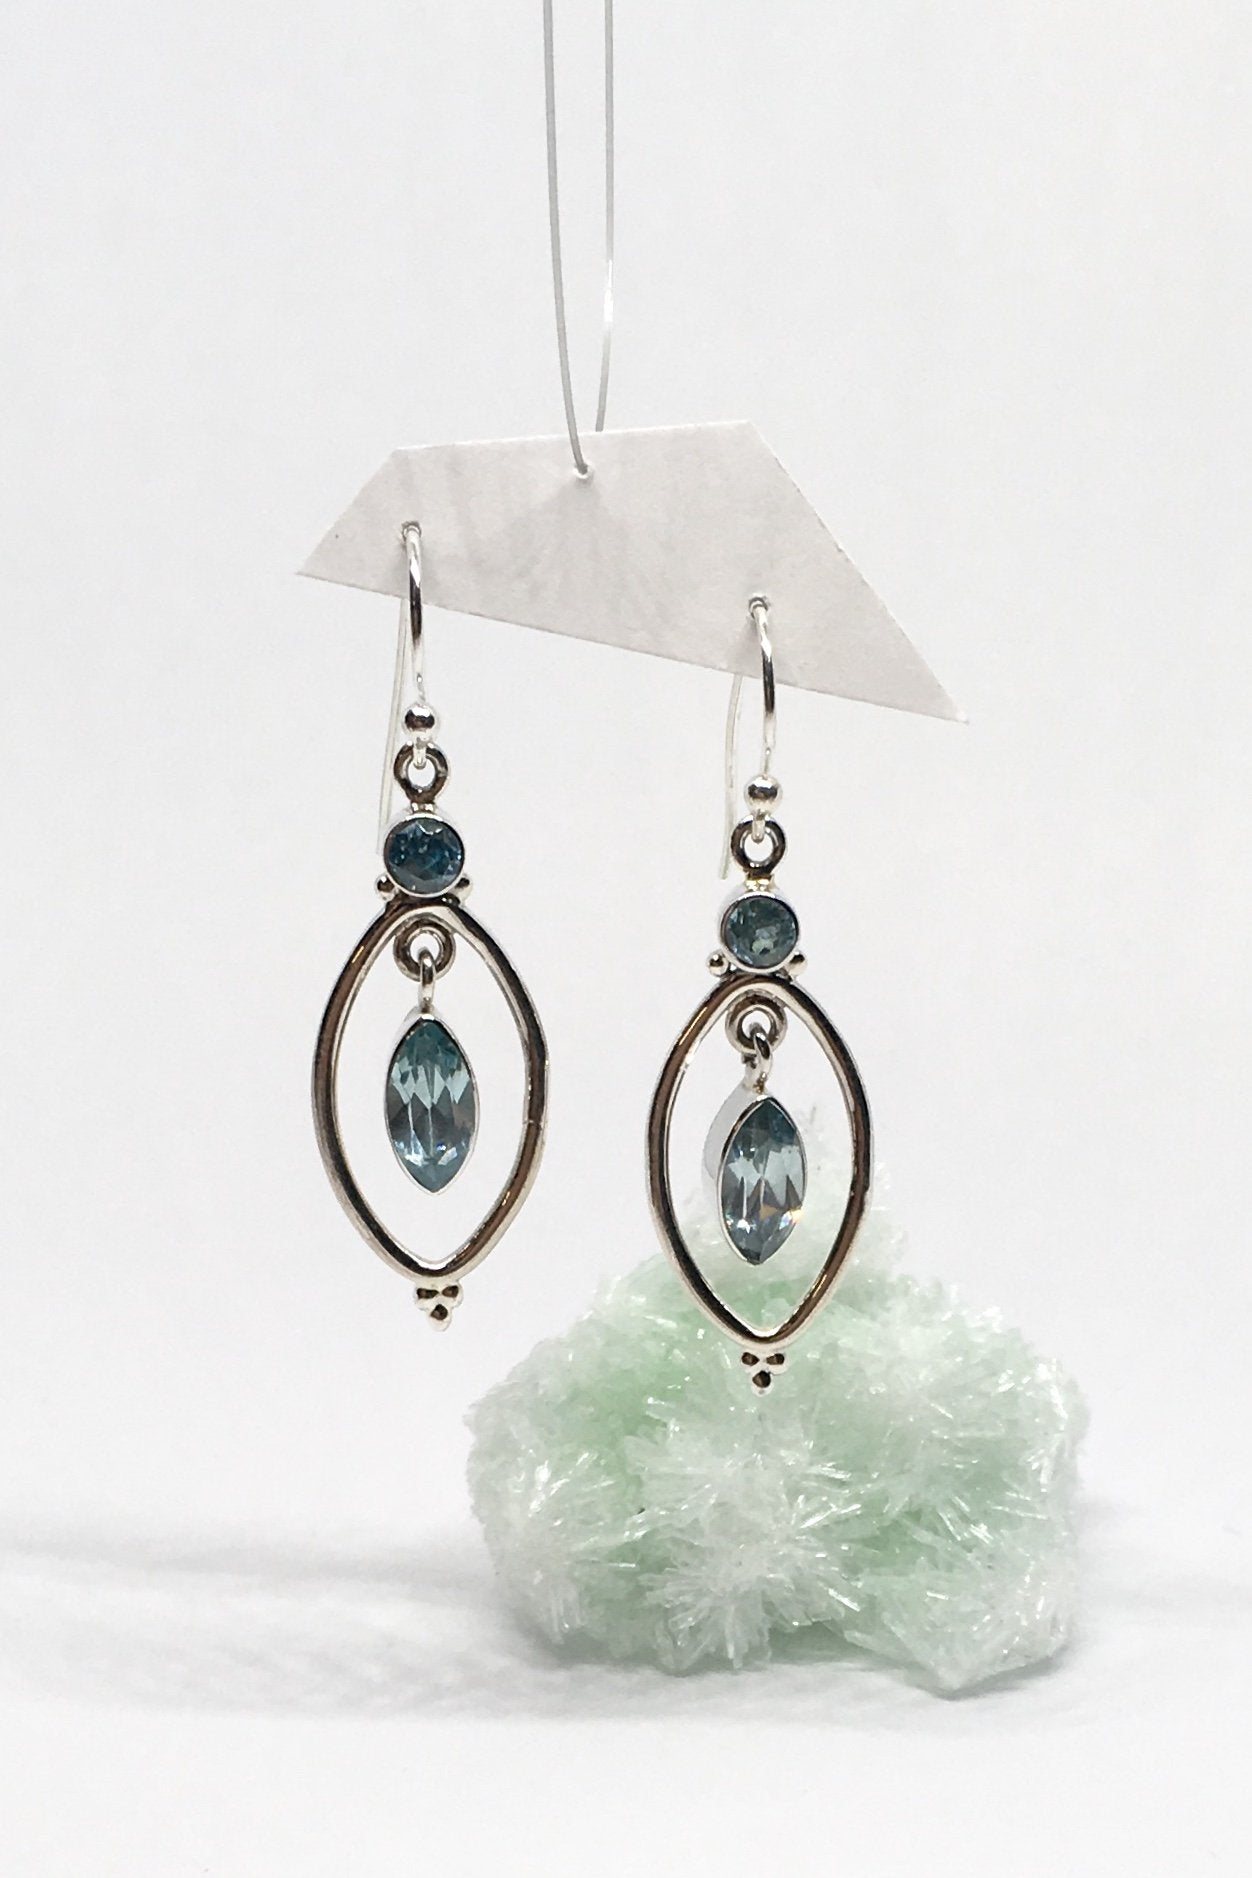 A beautiful dainty earring in 925 silver, this design features a hanging oval faceted gemstone, with a circlet of silver